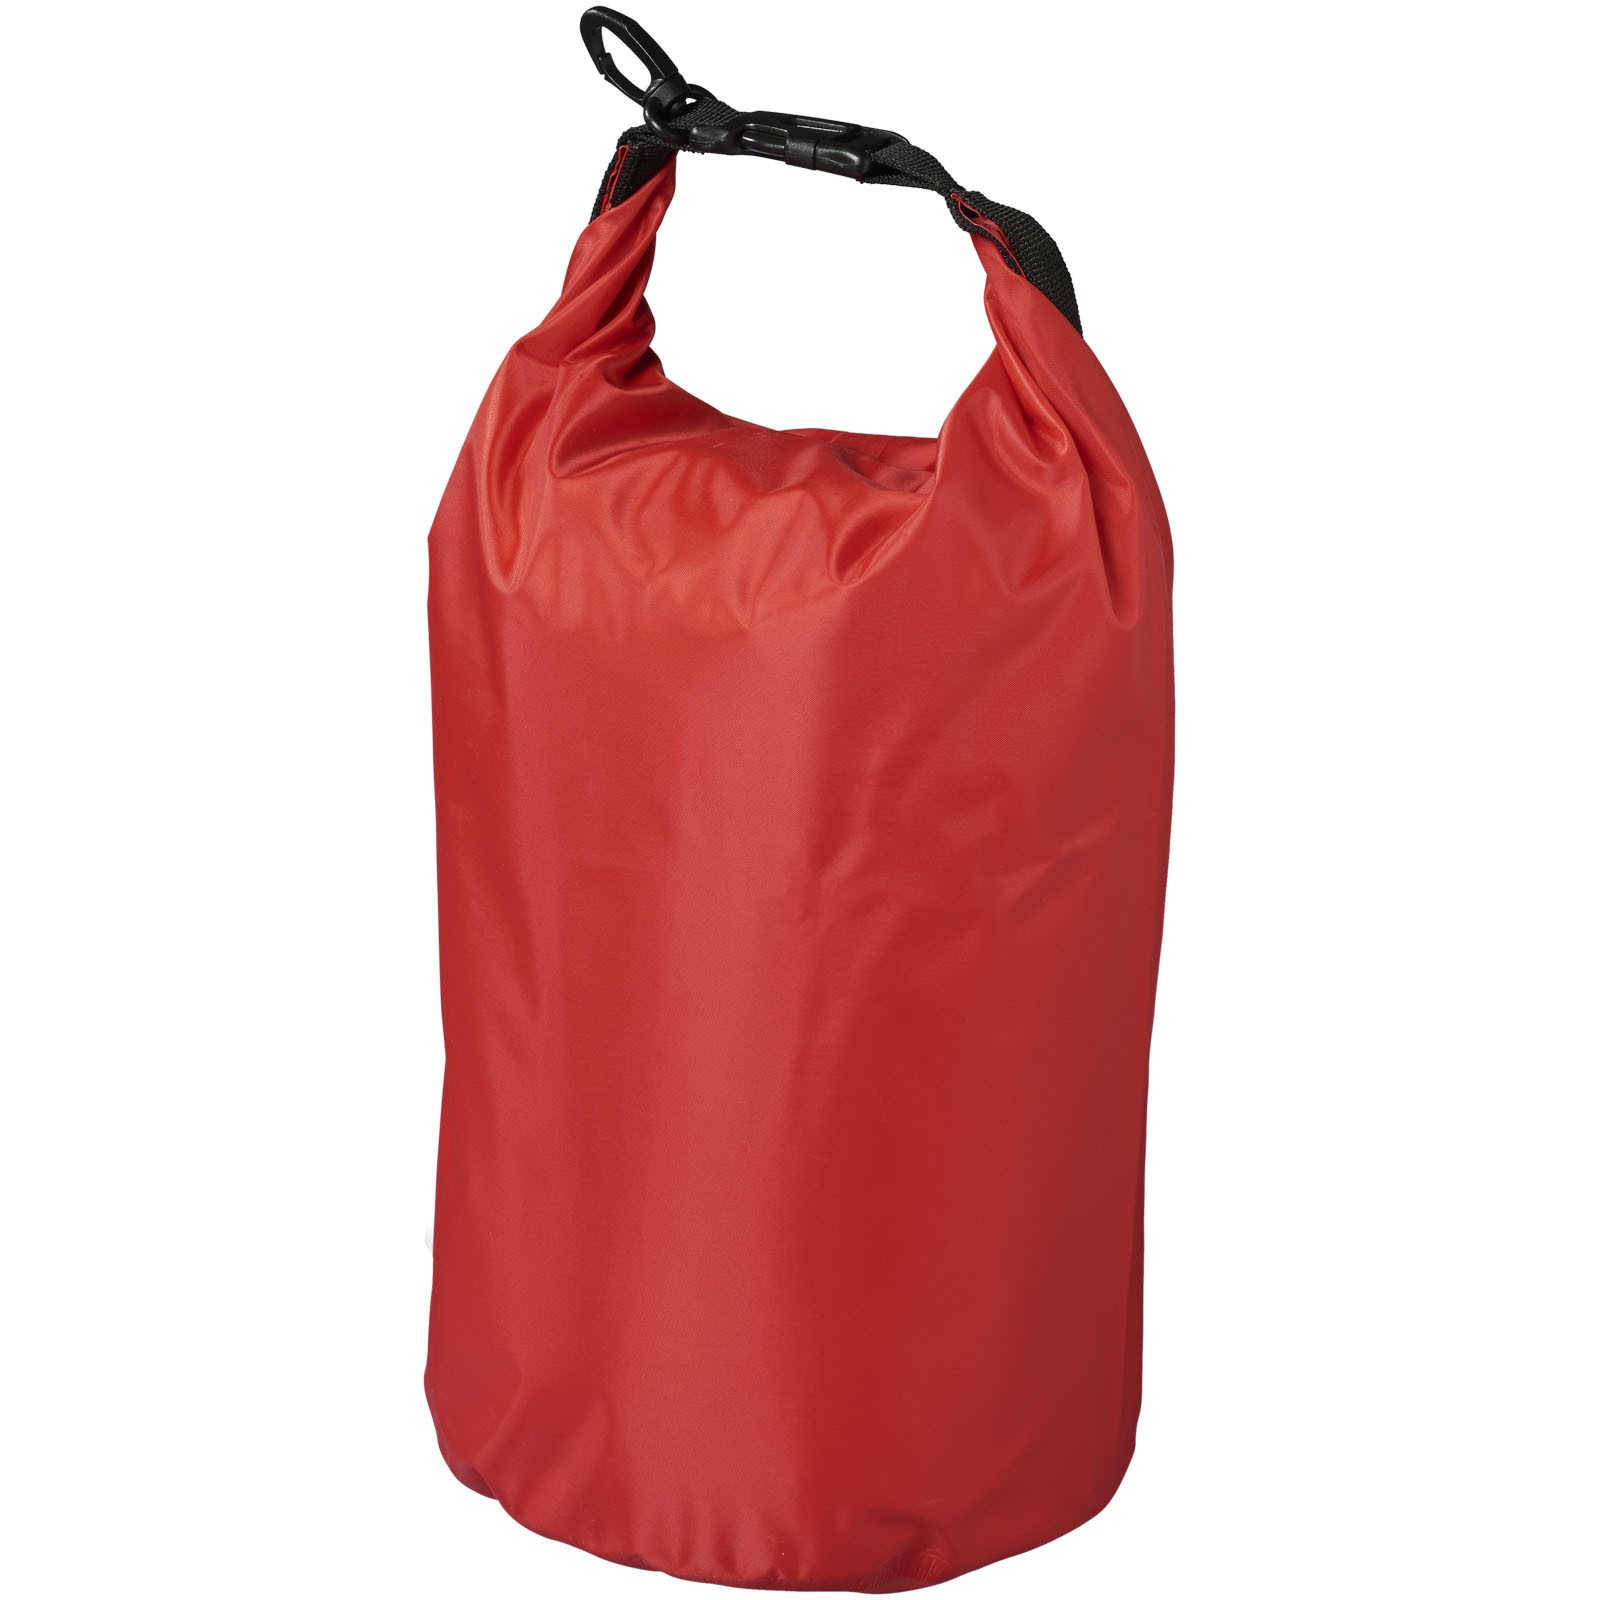 Survivor 5 litre waterproof roll-down bag - Red